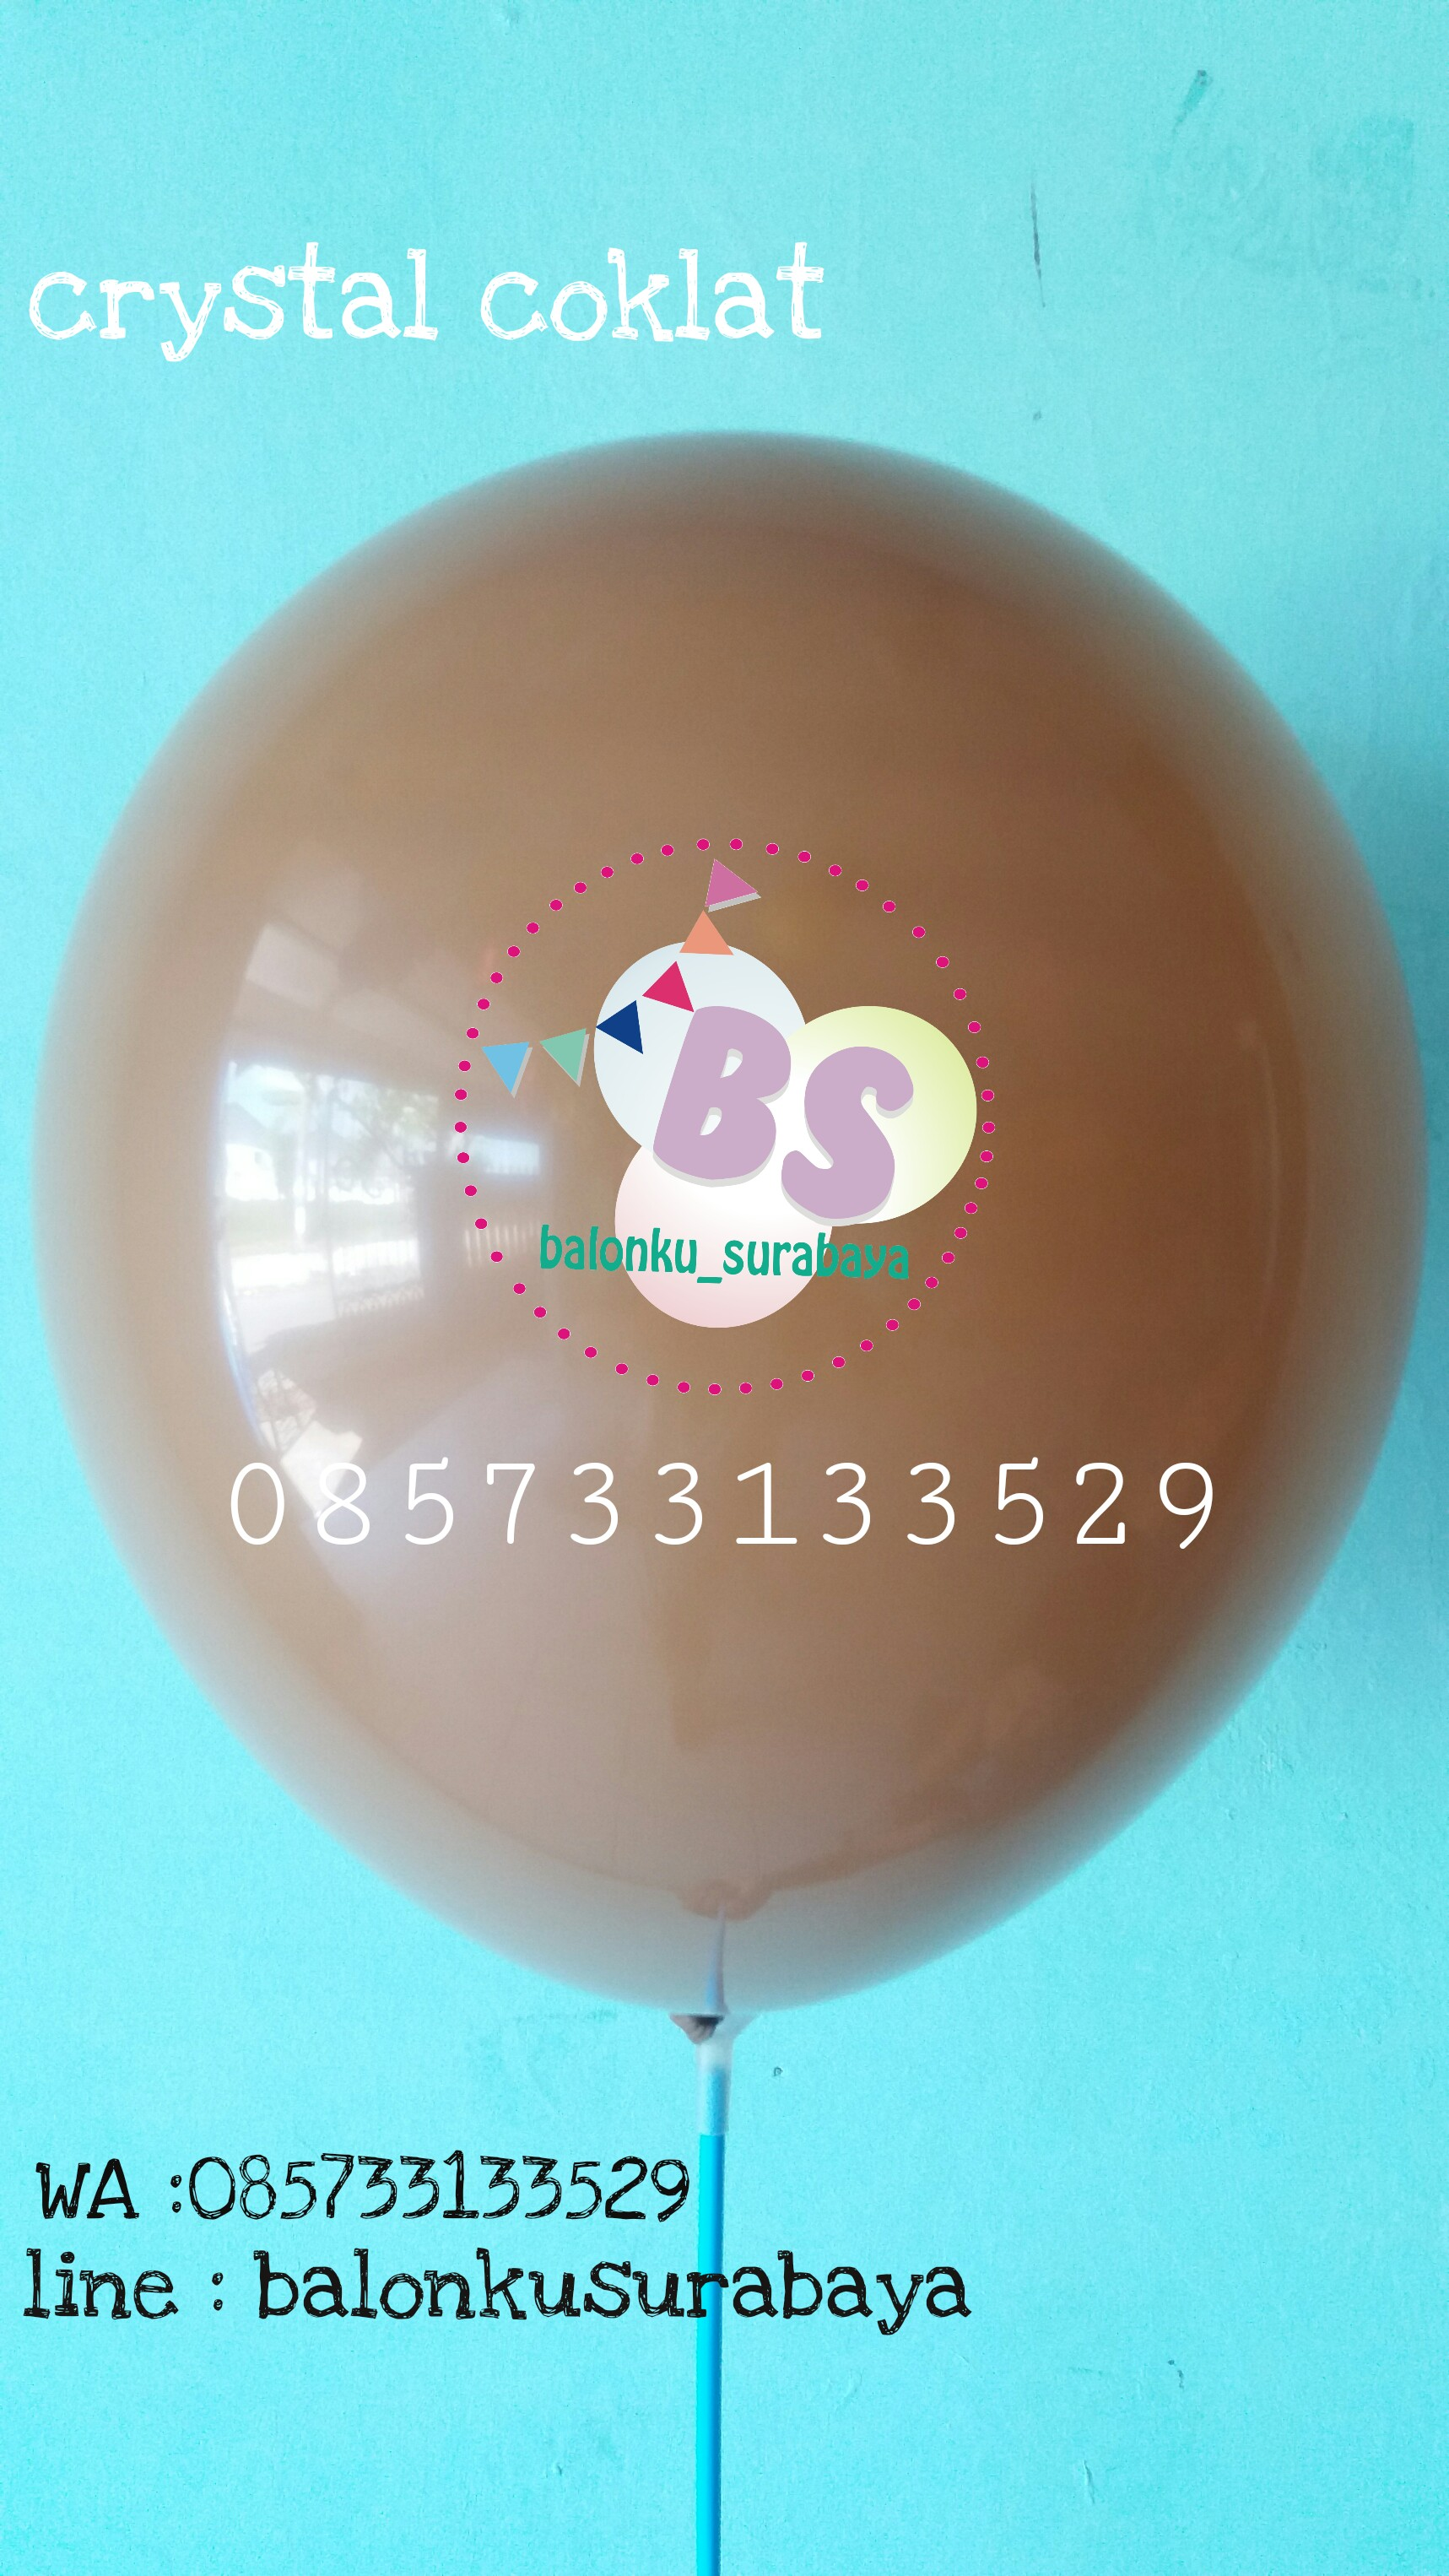 Balon crystal, balon doff, balon metalik, balon gas, balon dekorasi, balon surprise, balon latex coklat